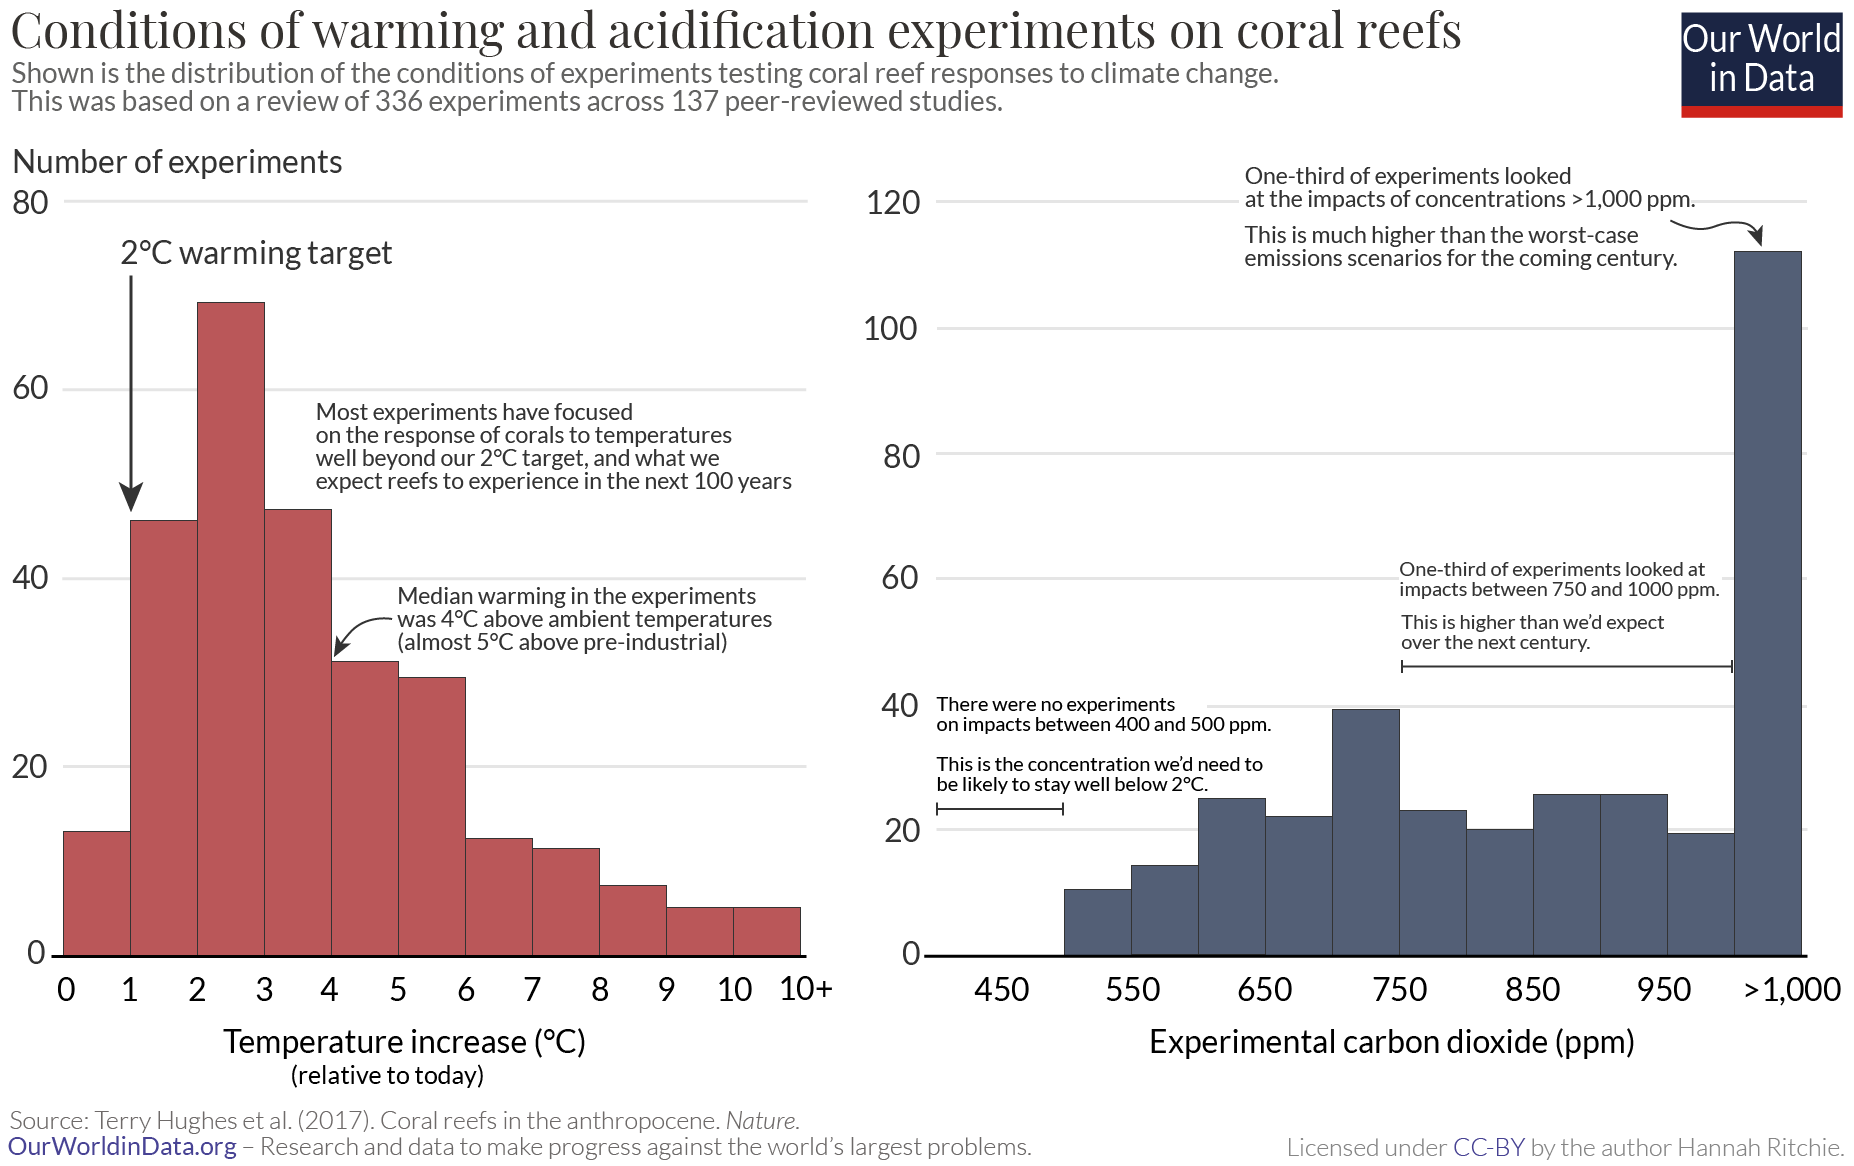 Coral reef experiments